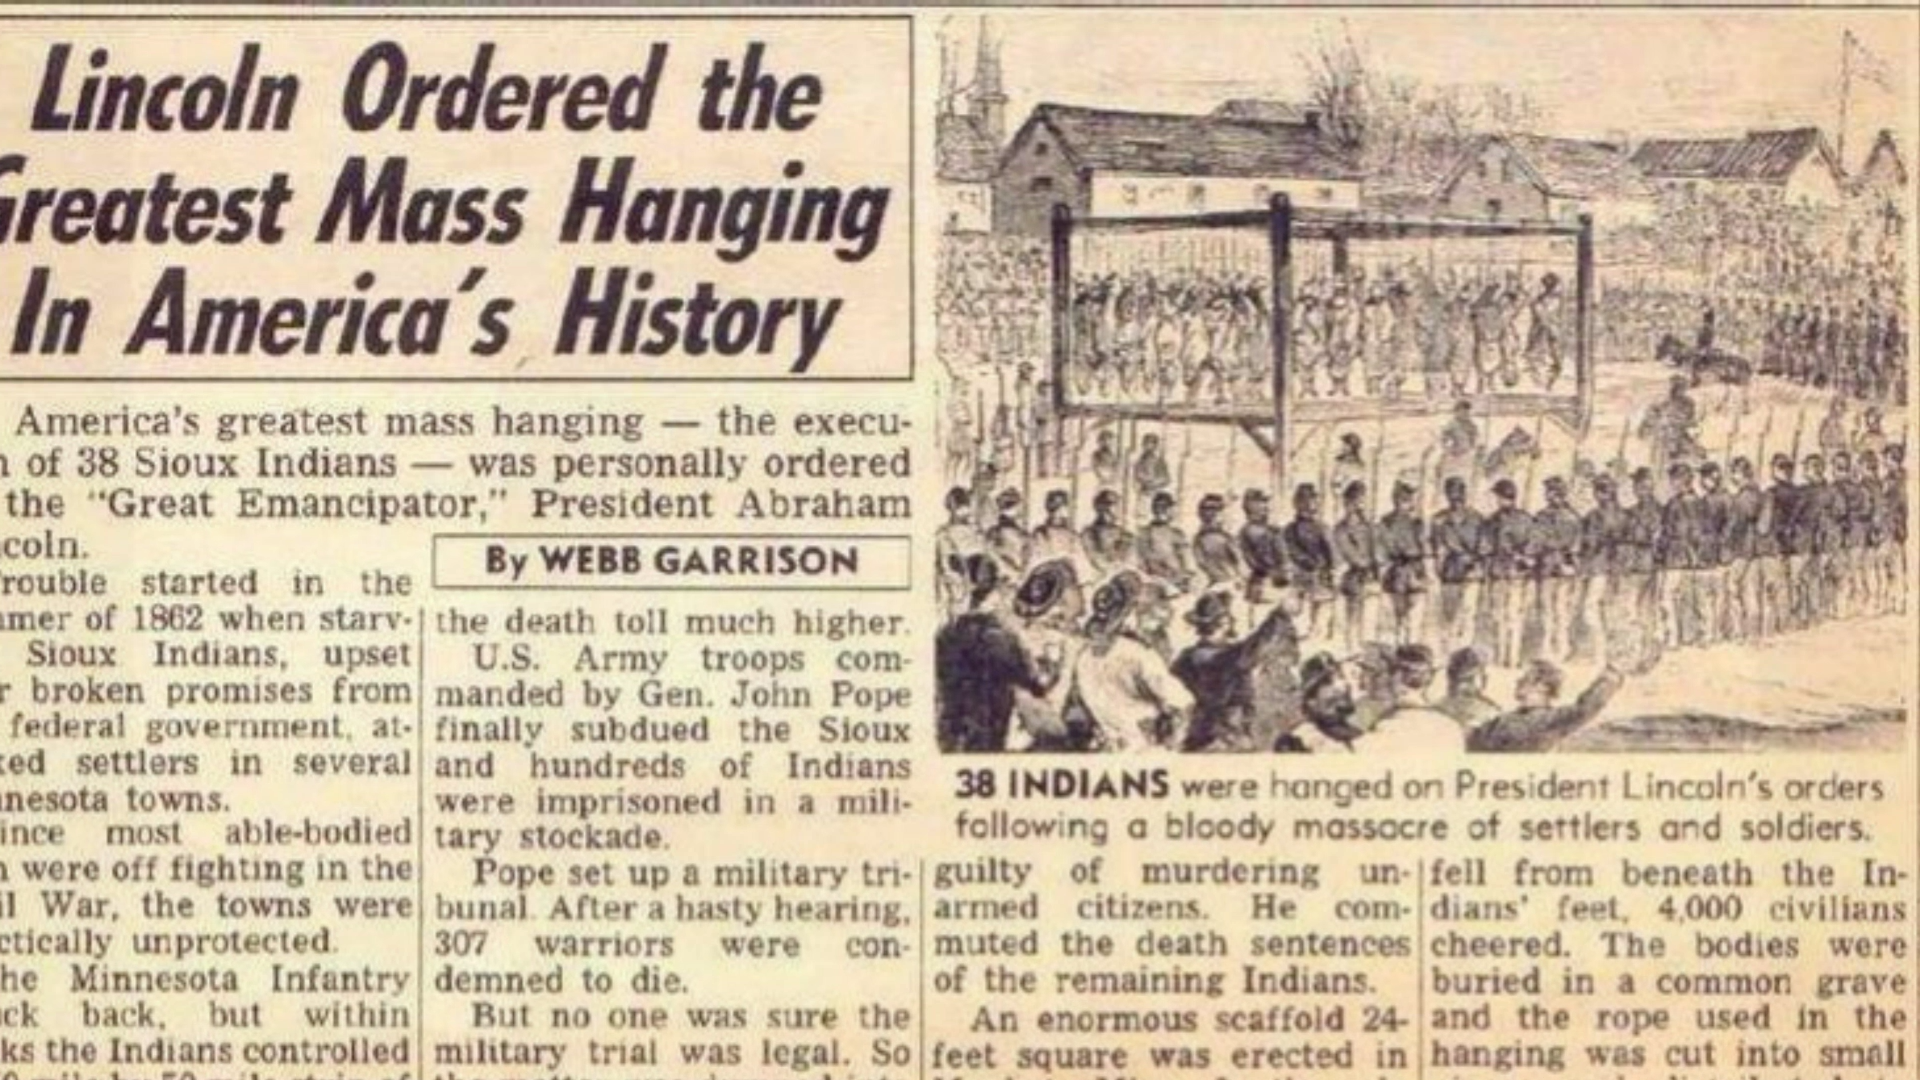 A newspaper reporting on the largest mass execution in the US to date.